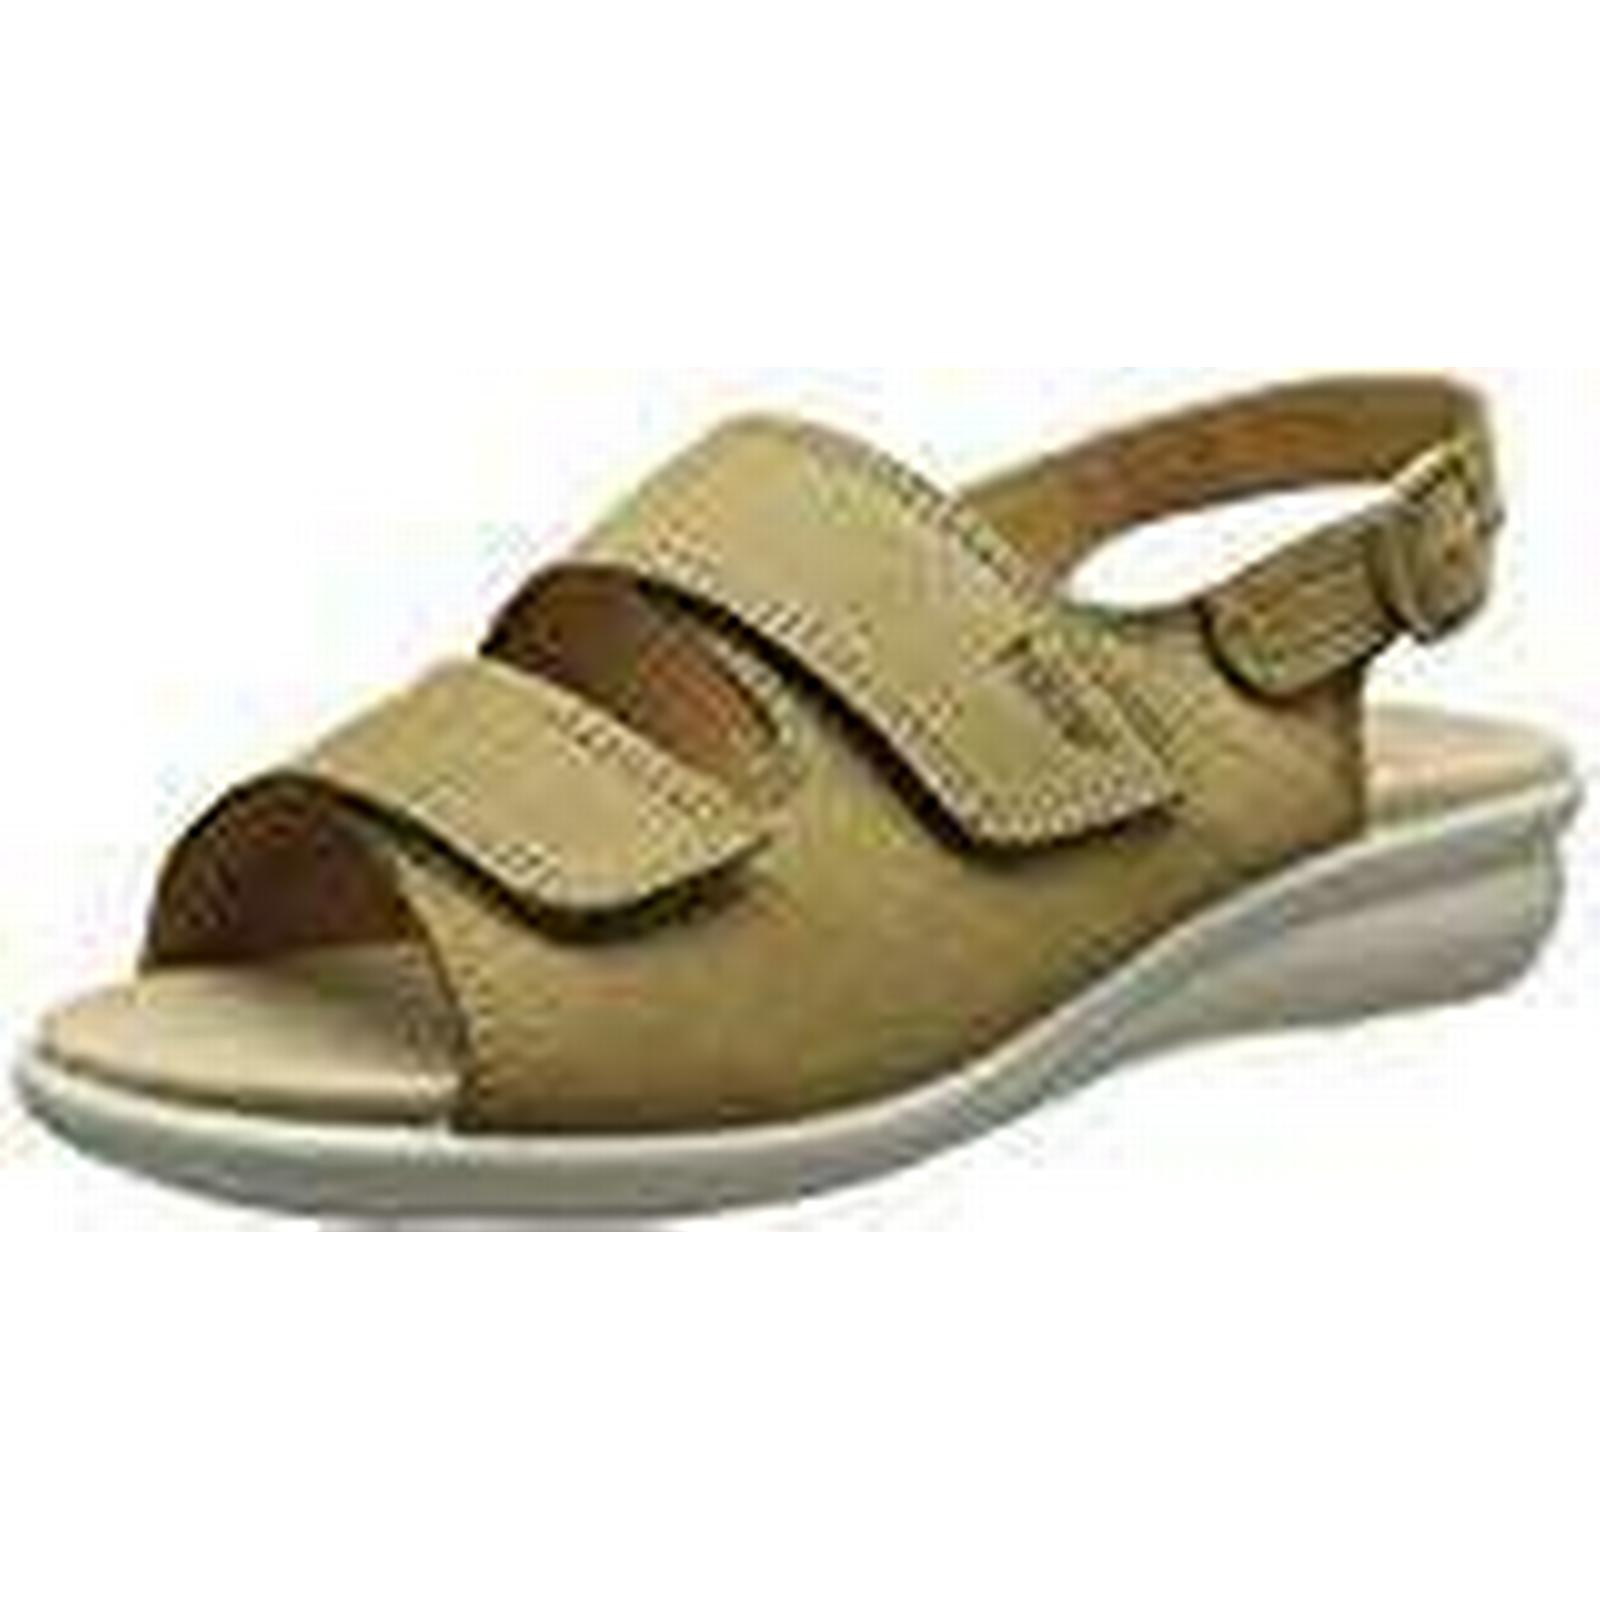 Hotter Women''s Easy UK EXF Open-Toe Sandals, Beige (Sand), 3 UK Easy 35.5 EU bf7381